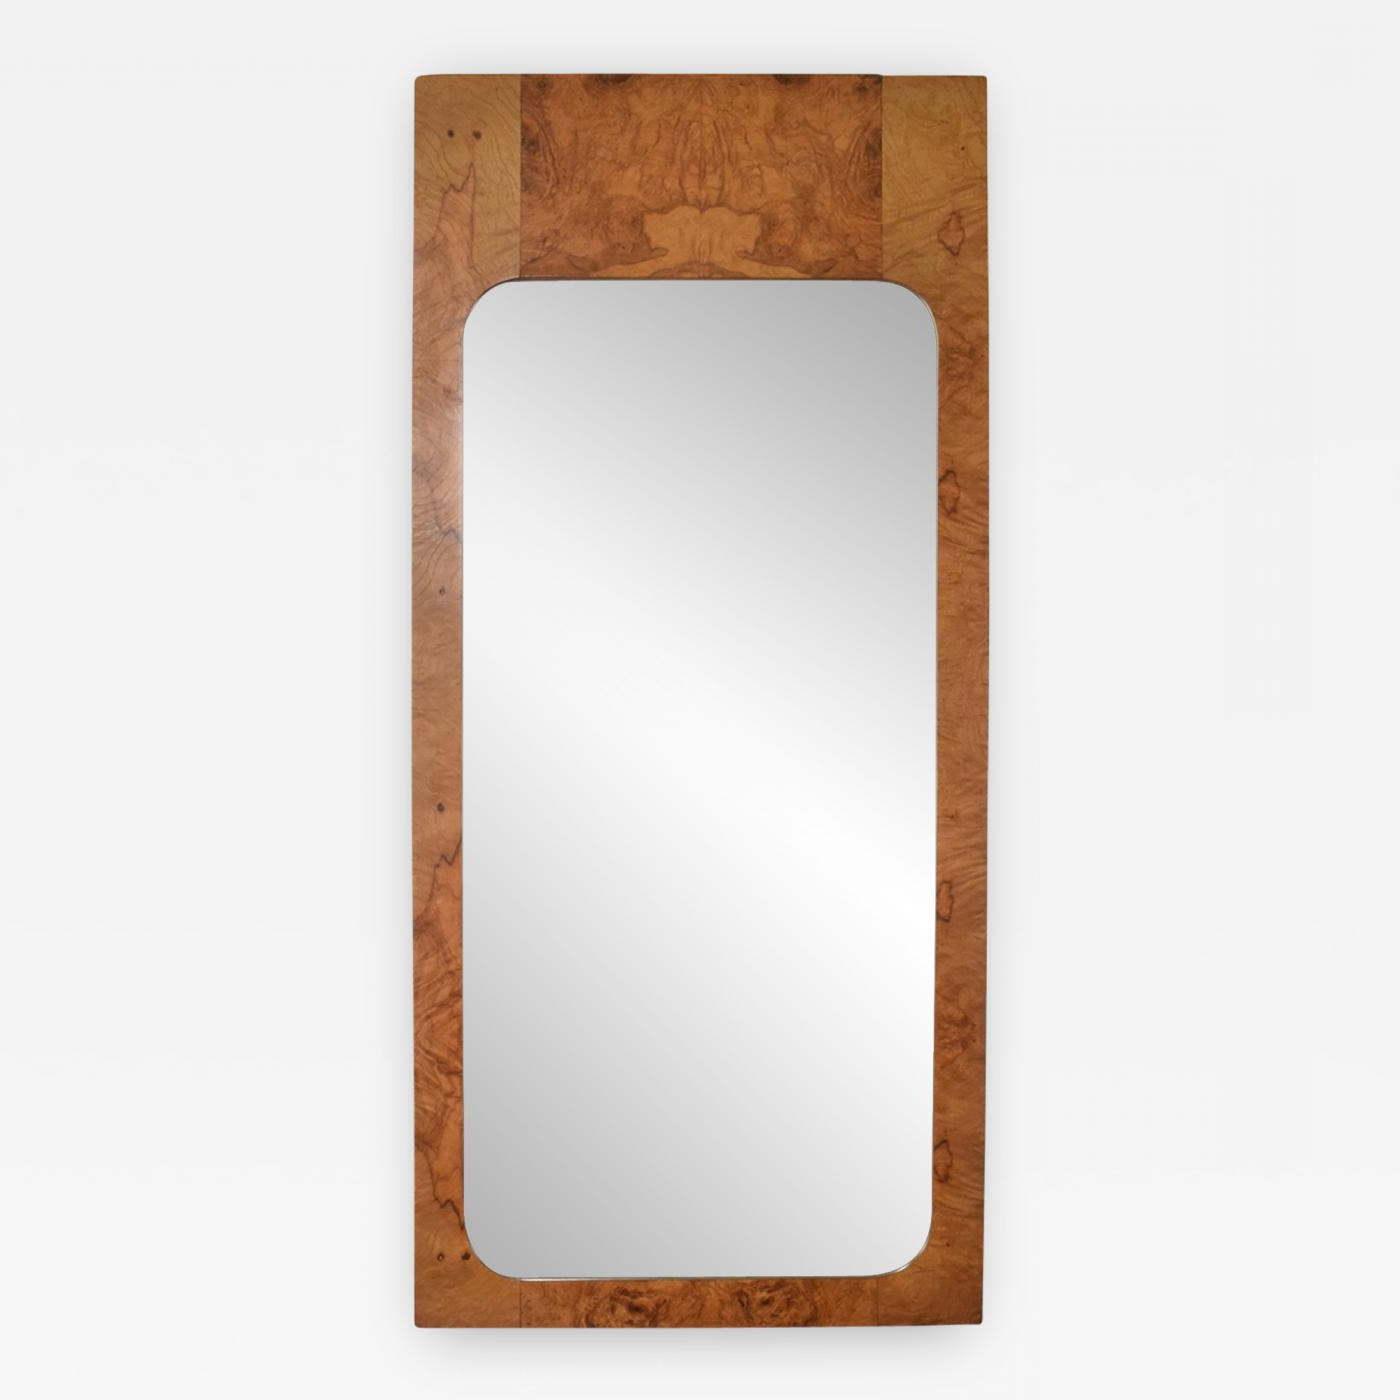 Mid Century Modern Wall Mirrors Intended For Widely Used Milo Baughman – Mid Century Modern Wall Mirror In Burl Wood After Milo  Baughman (Gallery 3 of 20)